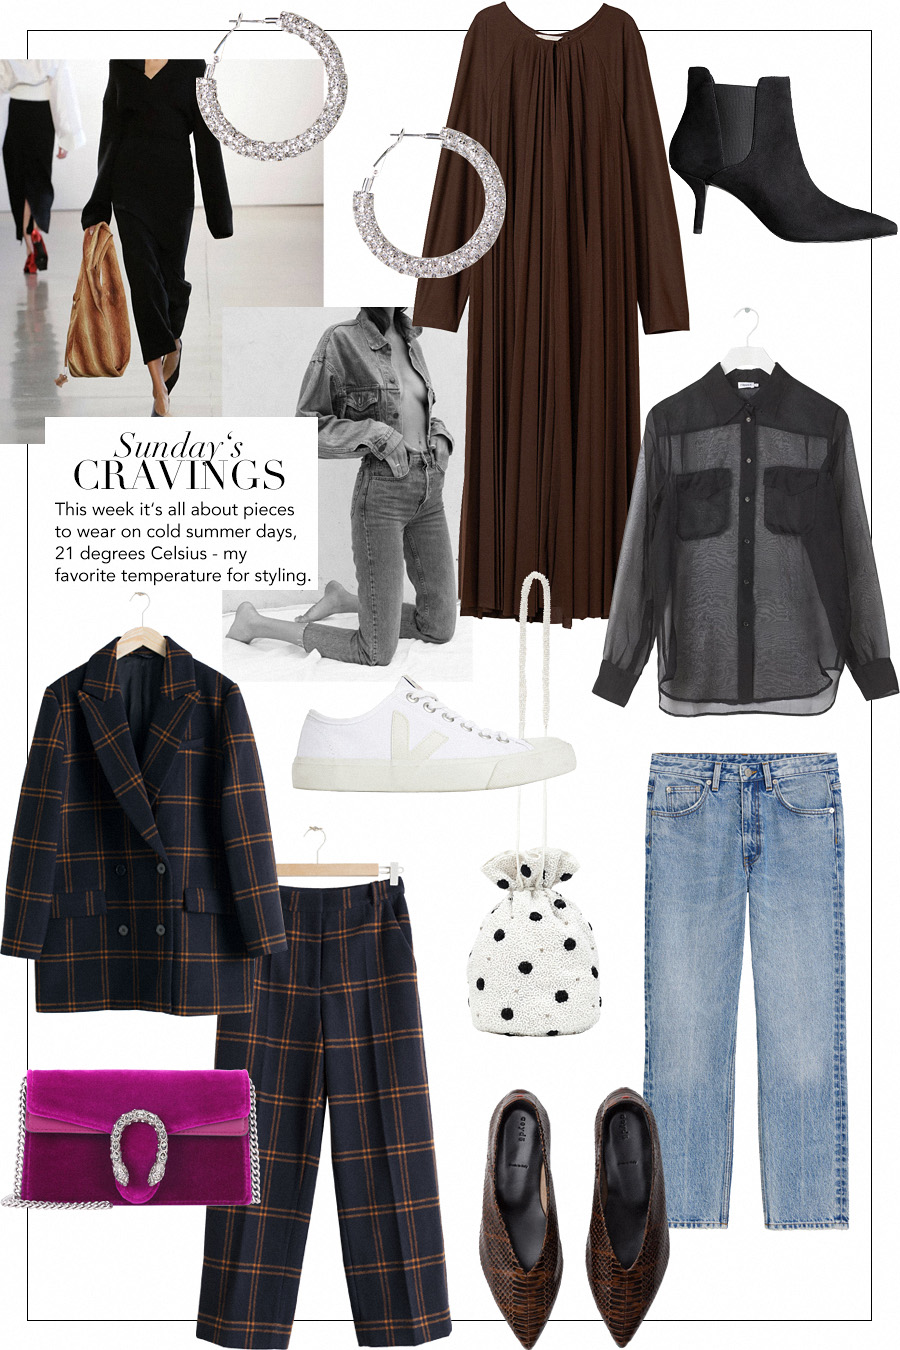 Sunday's Cravings: Gucci Dionysus velvet clutch, Aeyde ballerina flats, Ganni Beaded bucket bag, Rhinestone earrings, Plissé maxi dress, Pointed stiletto ankle boots, See-through shirt, Veja Wata sneakers, Oversized double breasted blazer, Cropped wool blend trousers, Cropped vintage style jeans